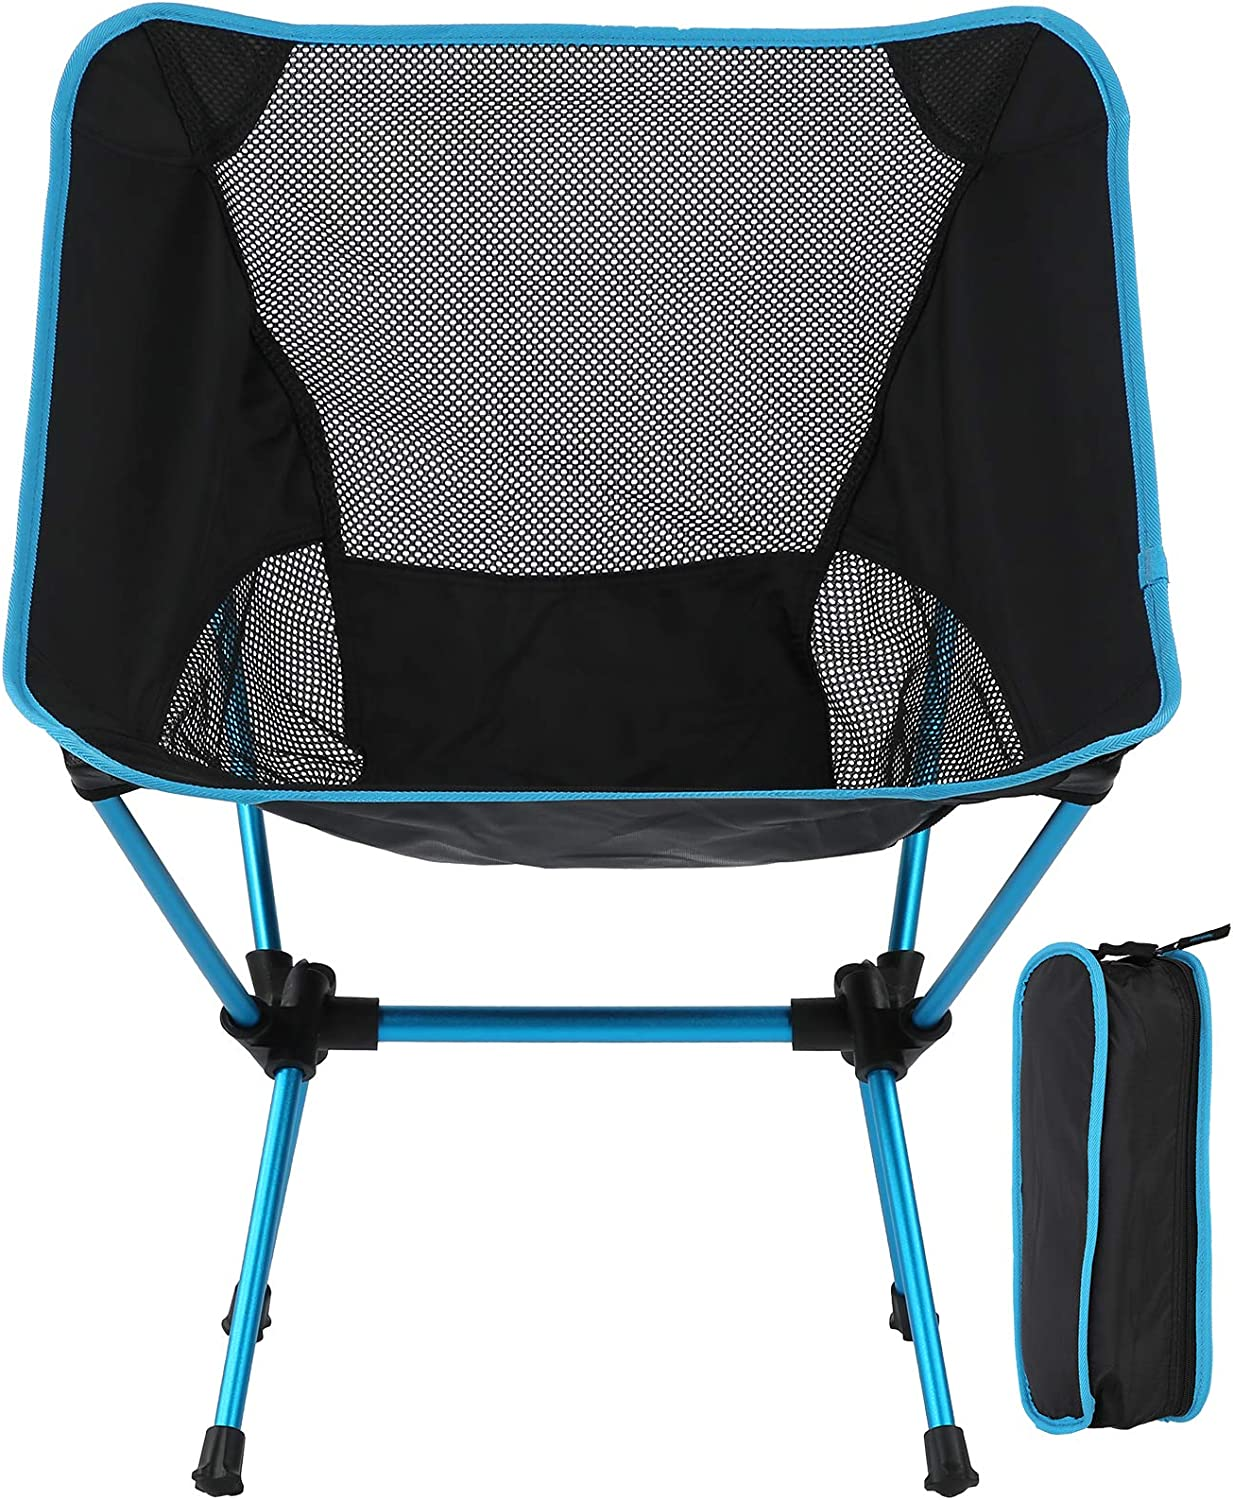 Keenso Super intense SALE Outdoor Dealing full price reduction Folding Chairs Portable Lightweight Chai